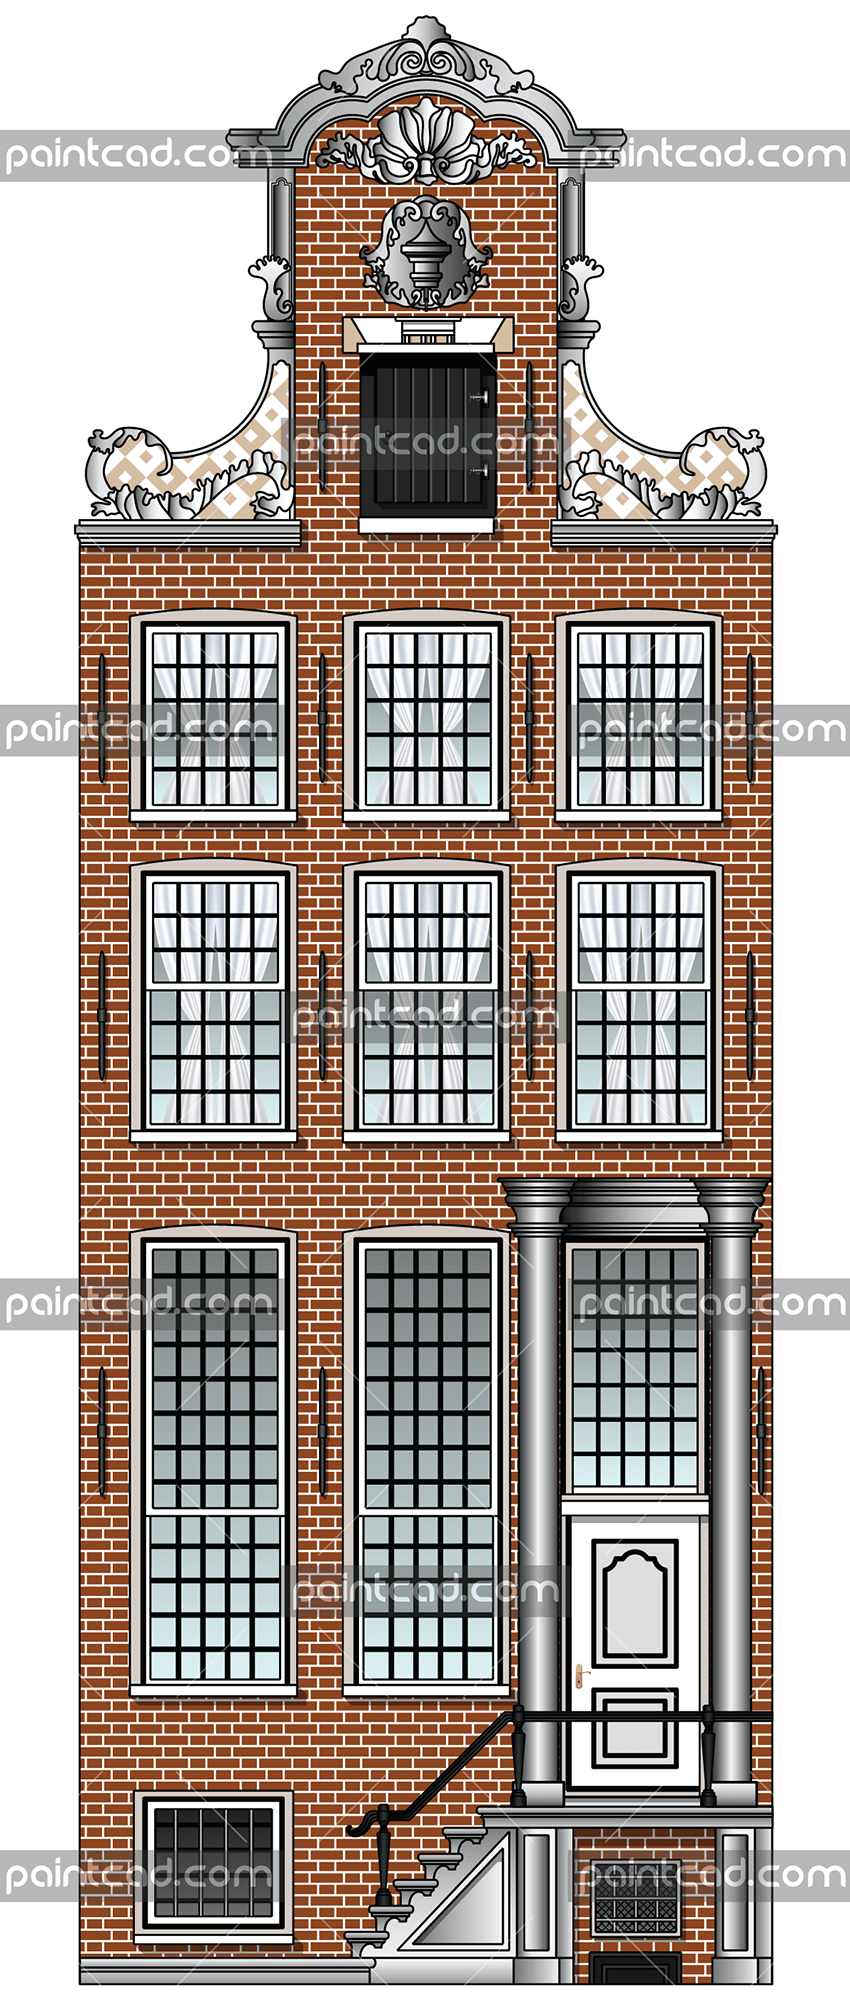 Facade of canal house from the Dutch capital Amsterdam - vector illustration